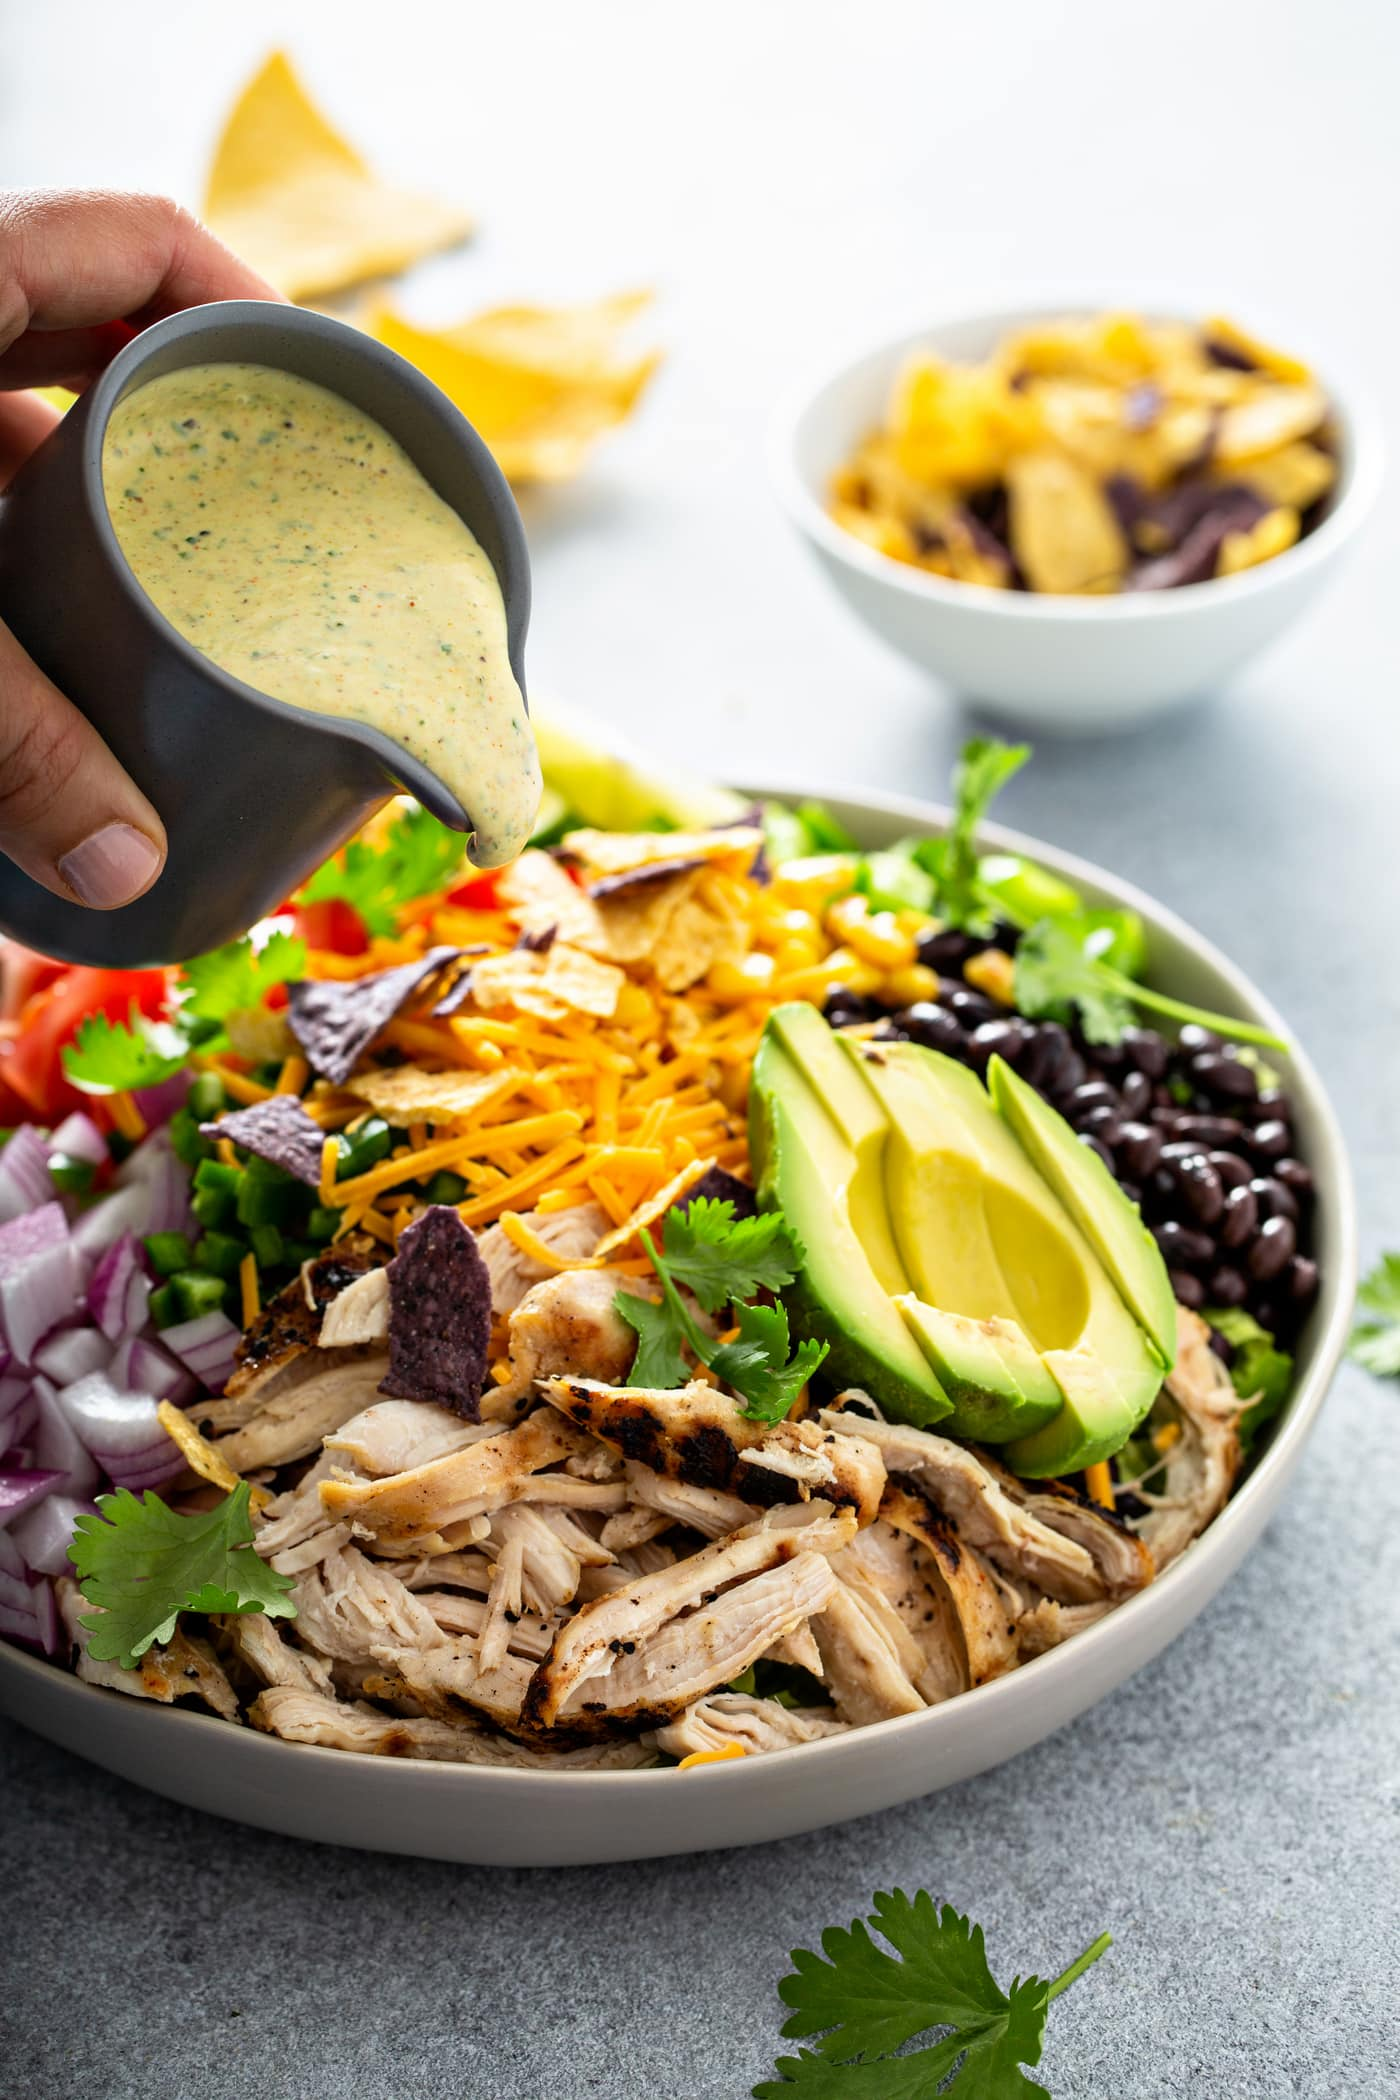 A chicken taco salad in a large bowl. It has chopped tomatoes, red onions, cheese, cilantro, lime wedges, chicken, corn, beans and peppers. There is also a sliced avocado. There are chips in the background and dressing is being poured over the salad.